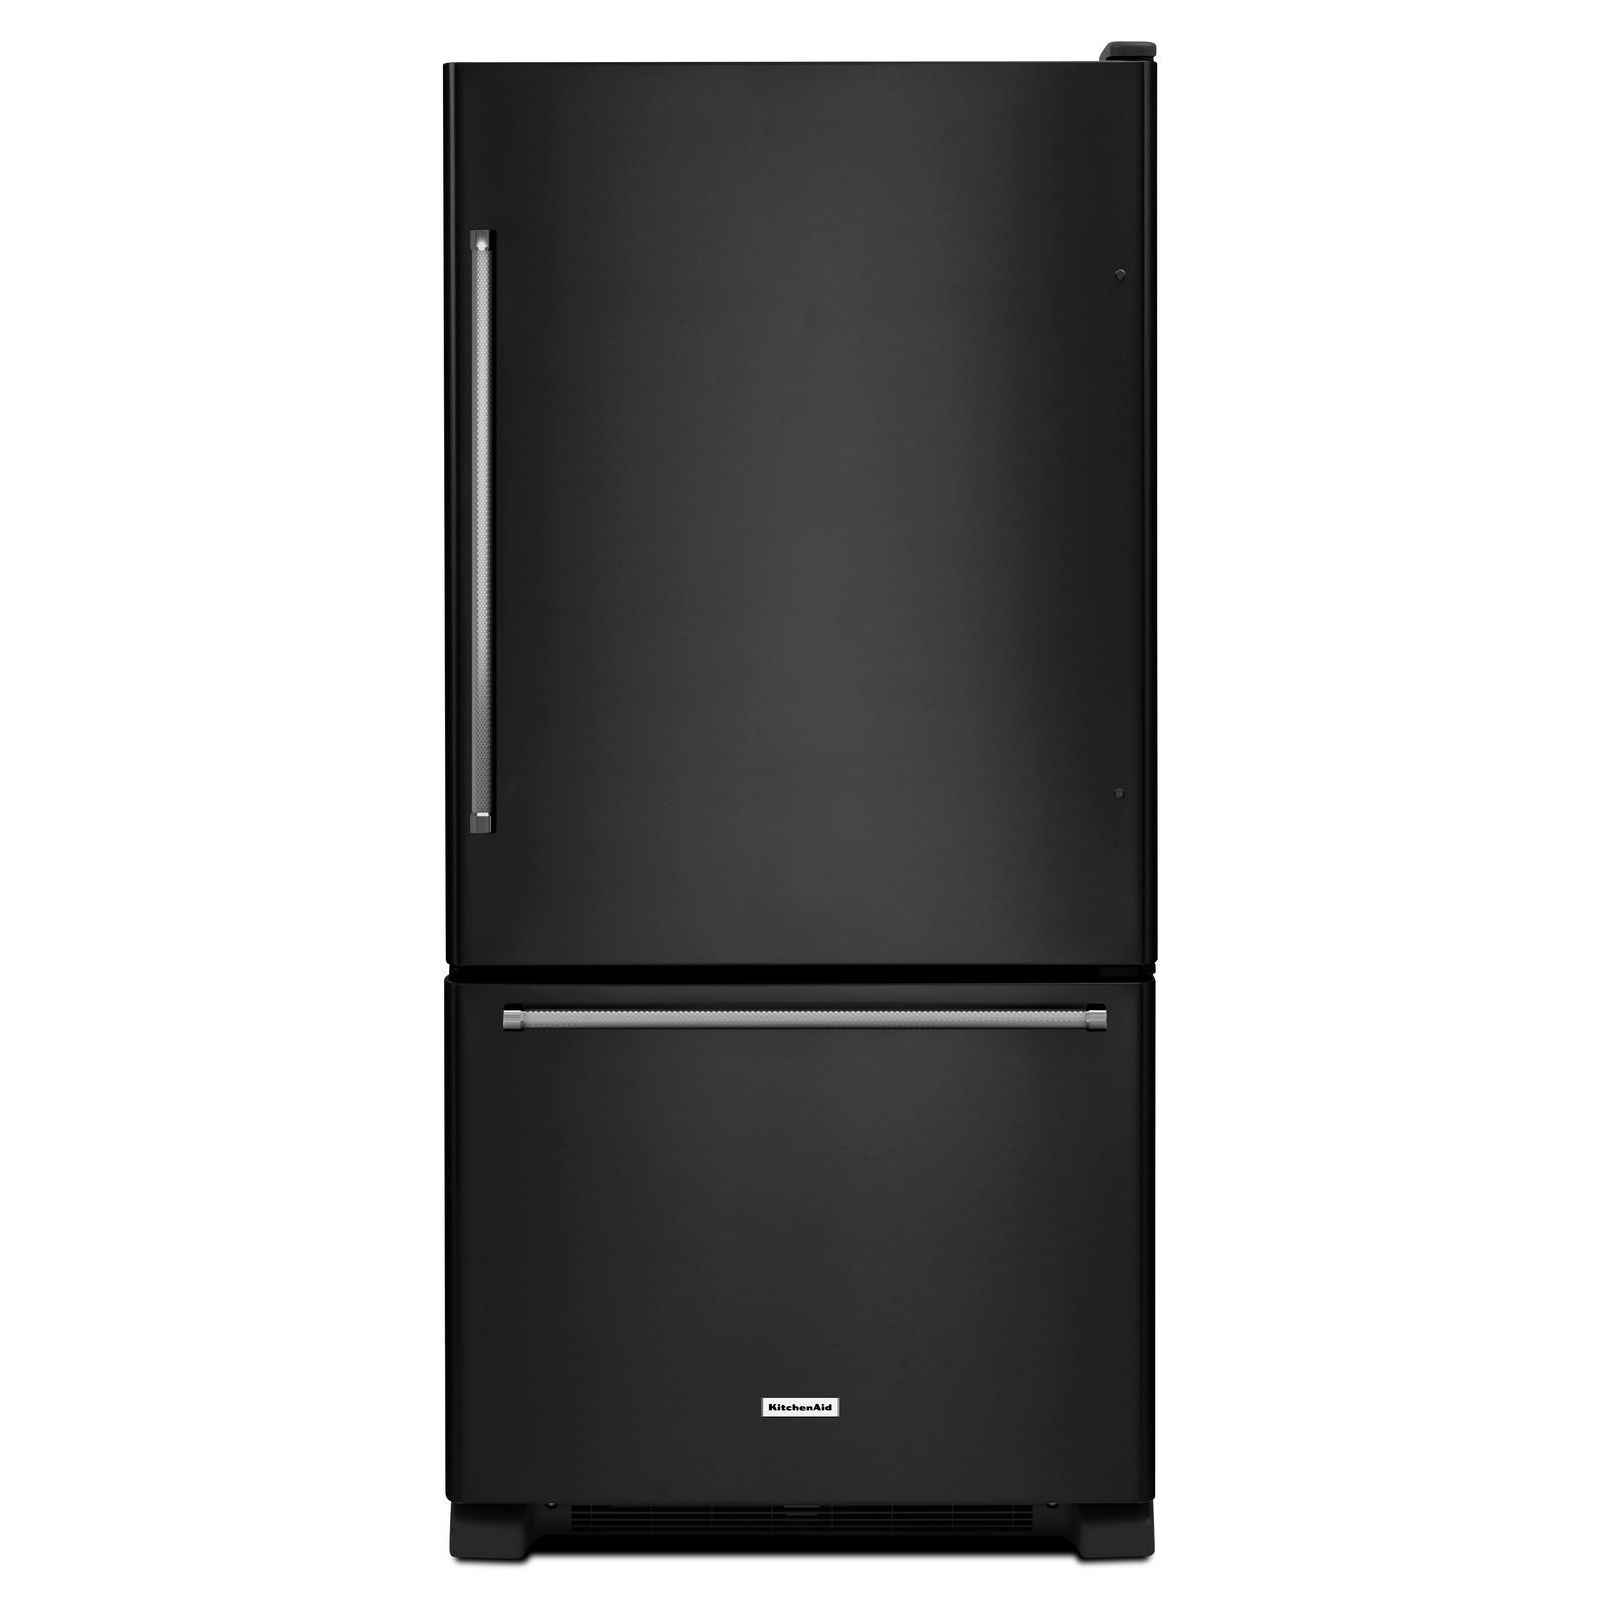 KitchenAid KRBX109EBL 19 cu. ft. Bottom Mount Refrigerator - Black